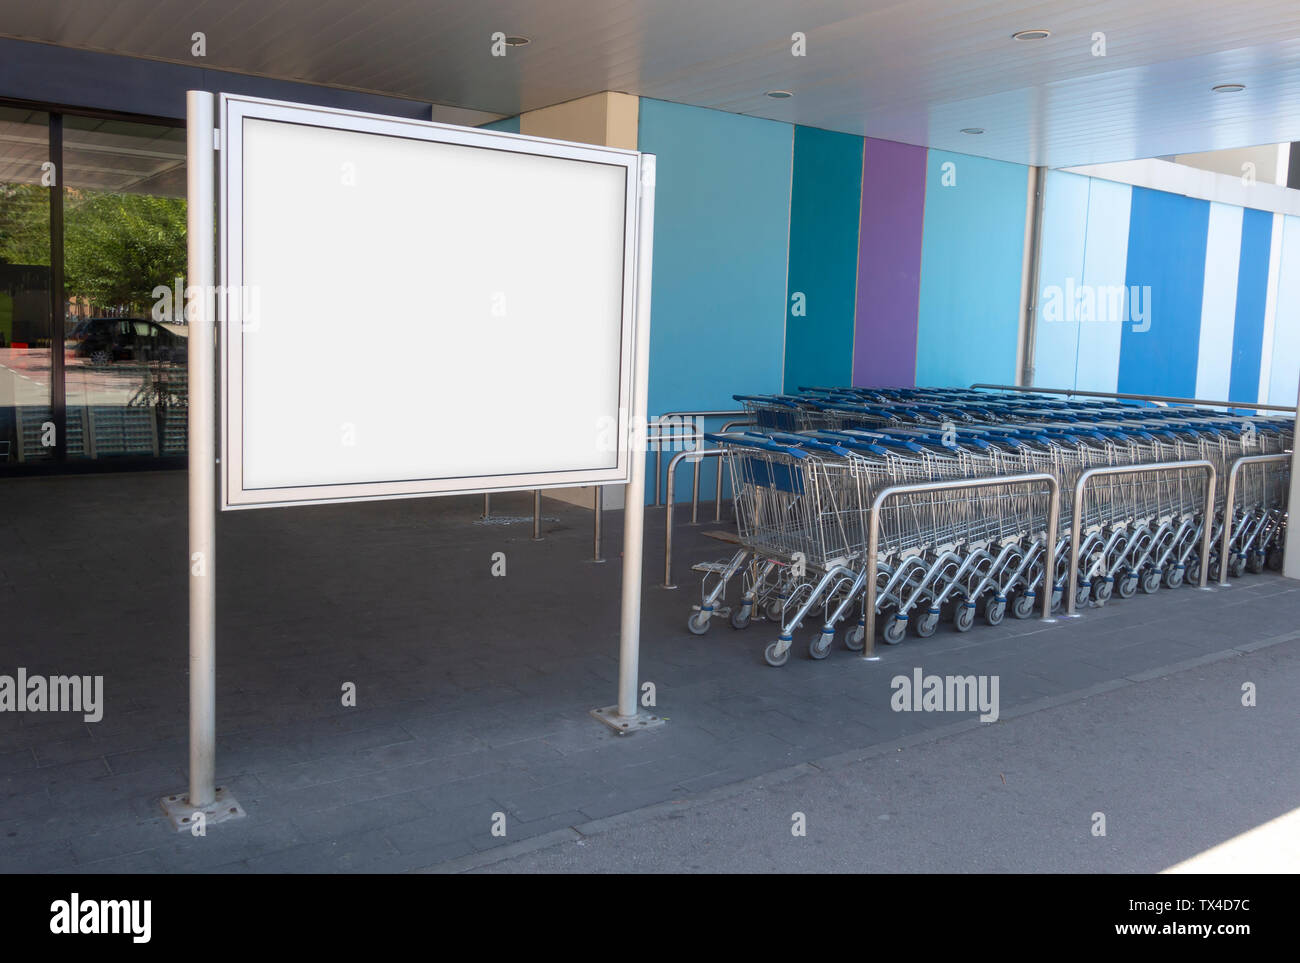 Blank billboard mock up in a supermarket, in front of shopping carts Stock Photo